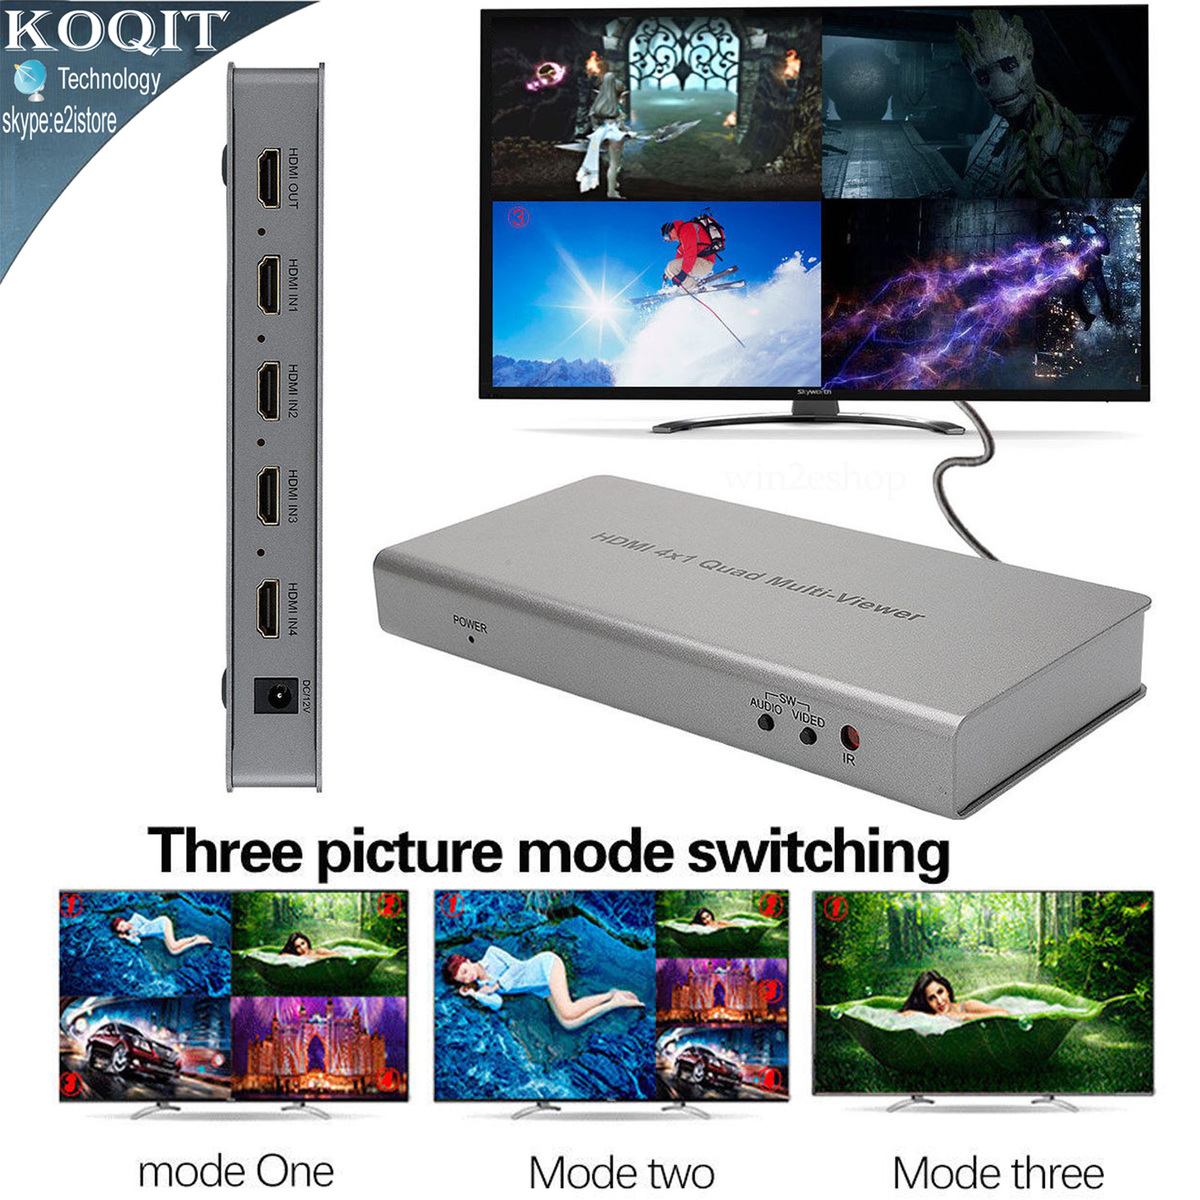 4 Port 4X1 HDMI Multi-viewer Quad Screen Real Time Multiviewer Converter Seamless Switcher Function 1080P 3D + Remote Control 4x1 hdmi multi viewer switcher hdmi quad screen real time multiviewer with hdmi fast switching function full 1080p 5 modes